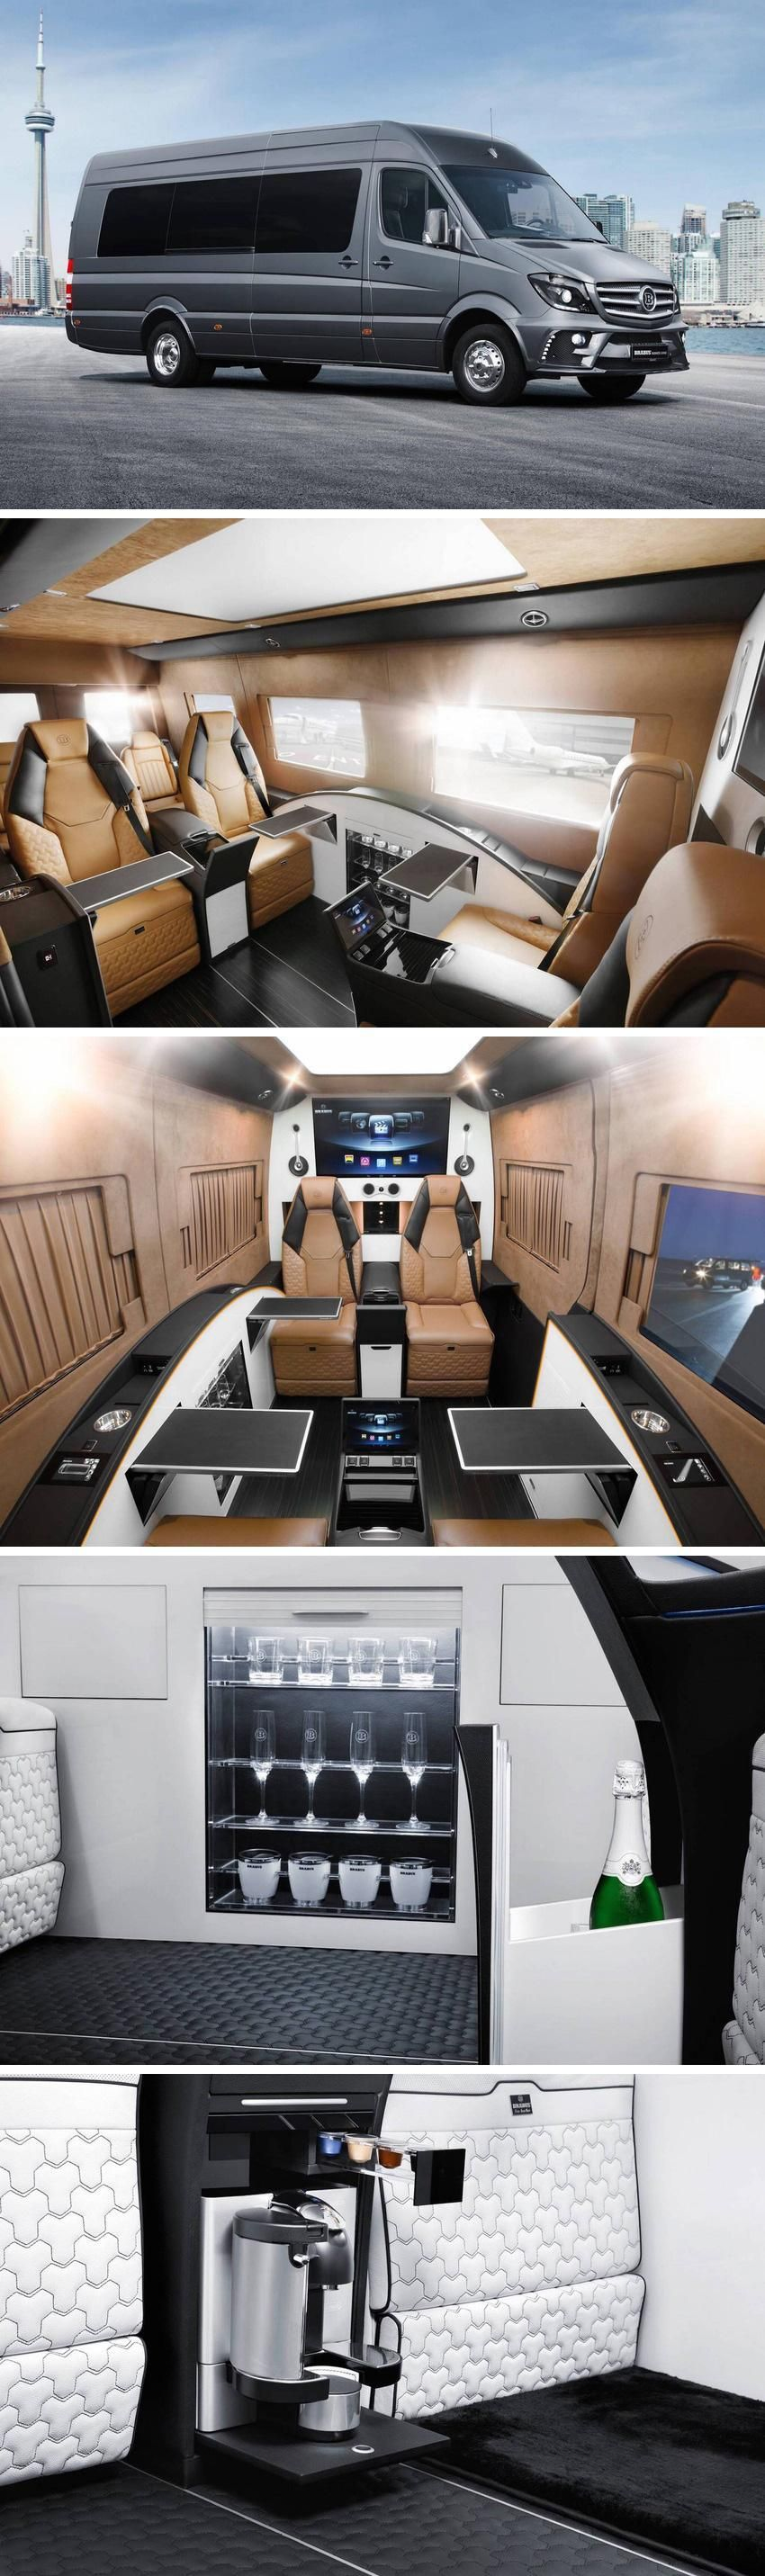 Brabusu business lounge sprinter van is nicer than your apartment